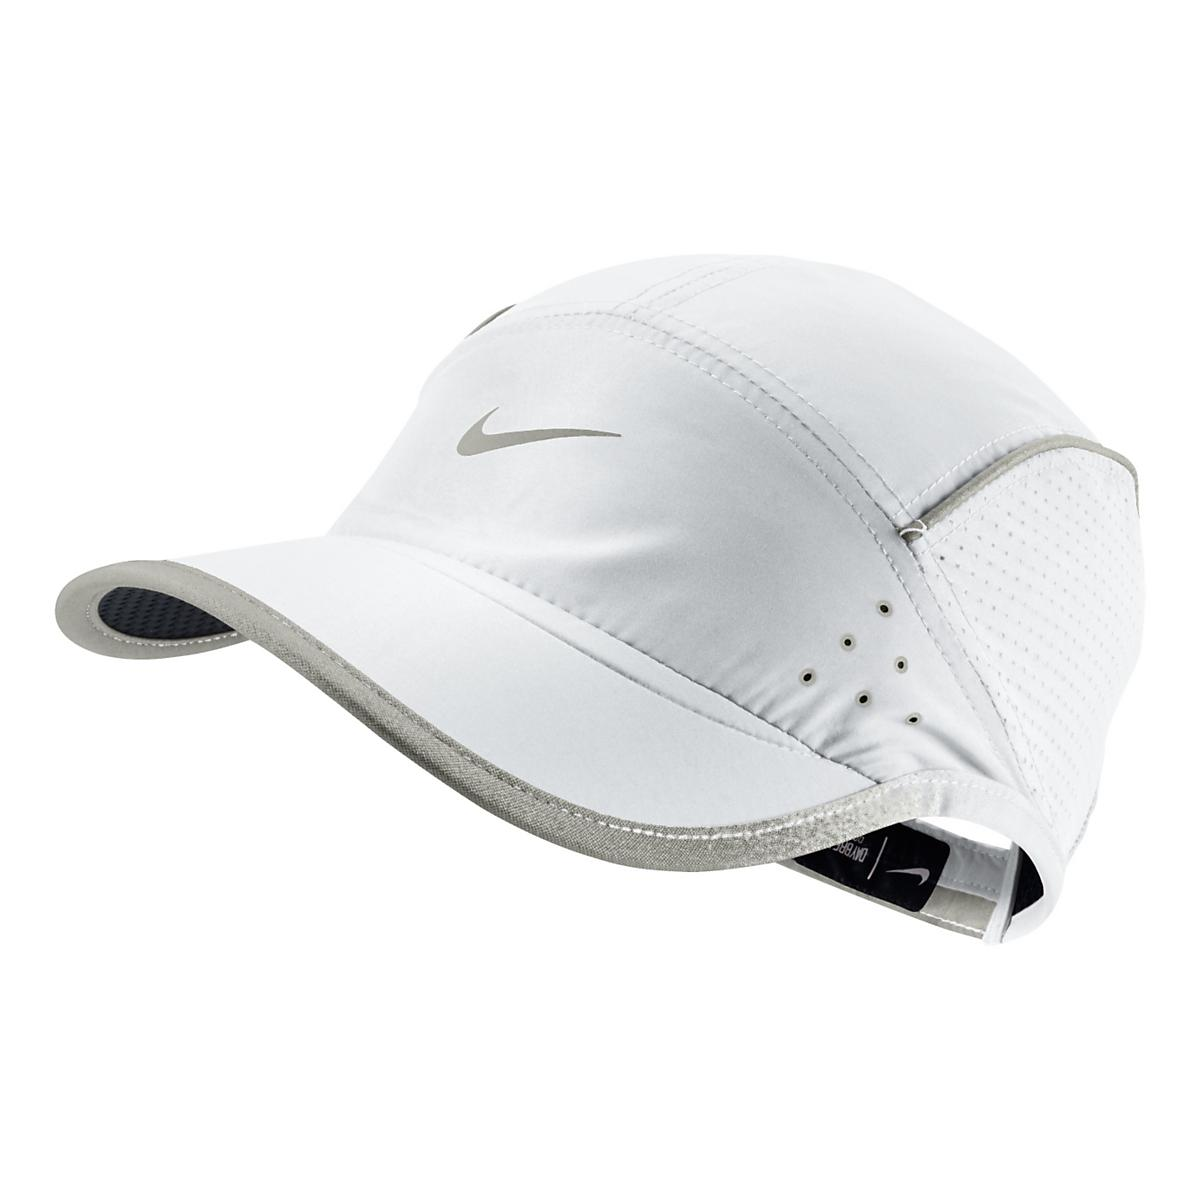 27fc0ebb820 Mens Nike Vapor Daybreak Headwear at Road Runner Sports